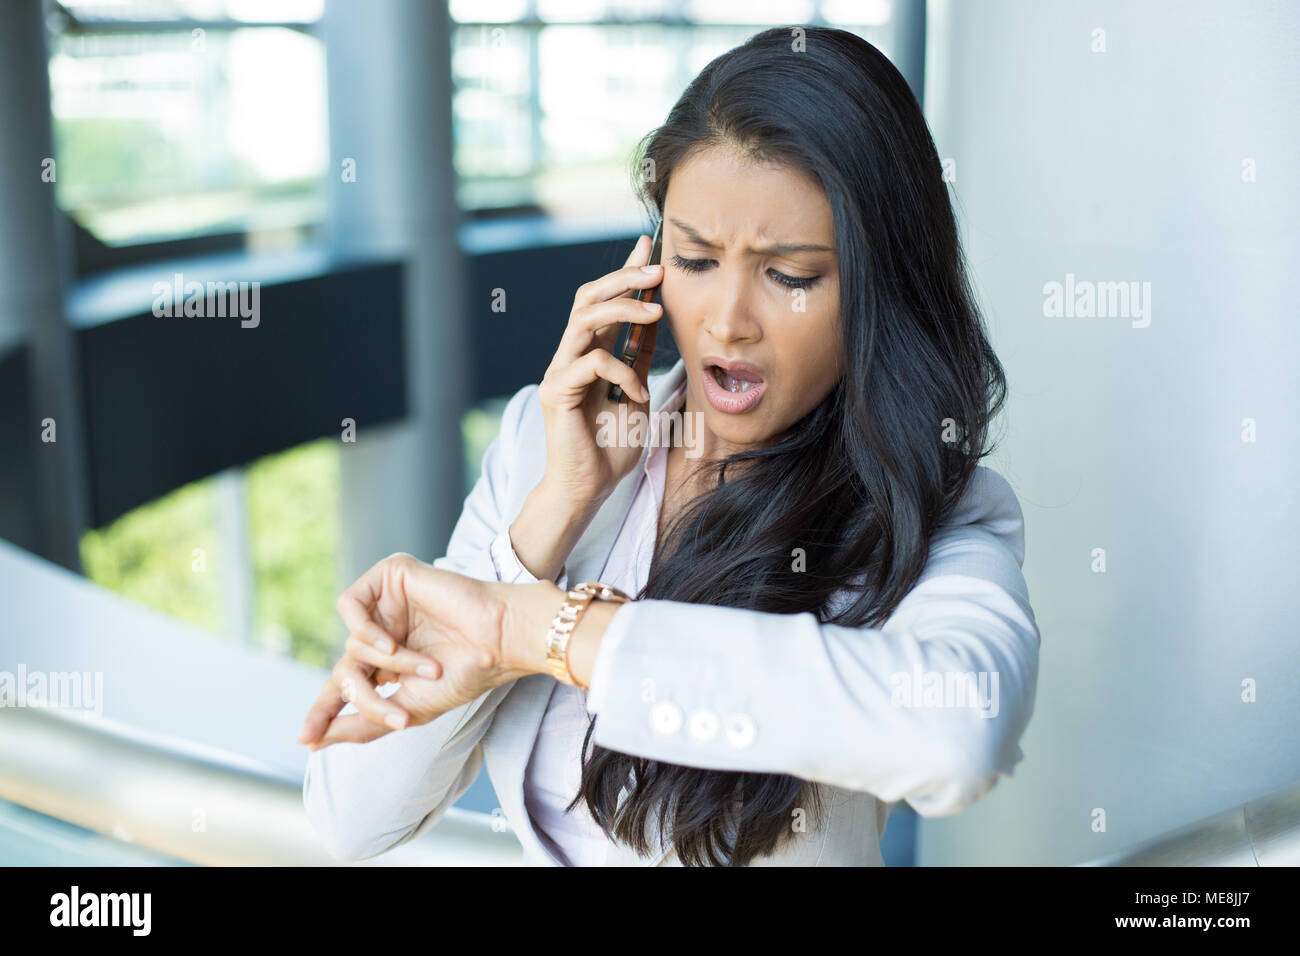 Closeup portrait, young woman in gray business suit blazer talking on cell phone concerned about running out of time on watch, isolated indoors office - Stock Image